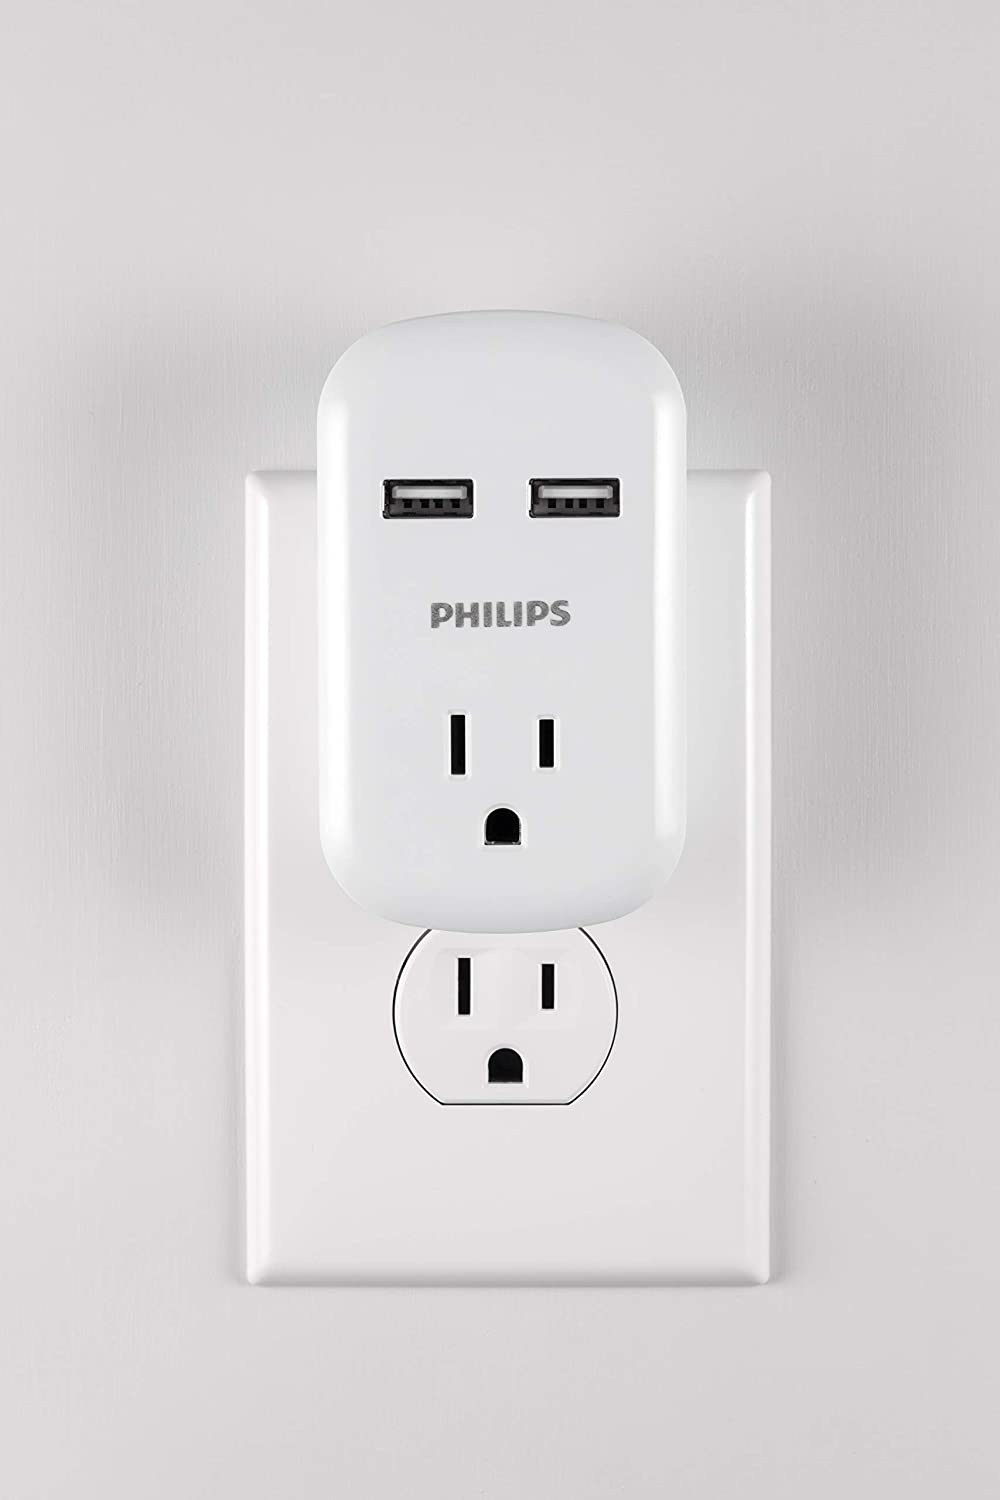 125V AC//15A//1875W ETL Certified 3 Prong 2 Ports Compact Adapter 1 Pack Philips 1 Outlet 2 USB Power Strip Wall Tap Charging Station White SPP1201WA//37